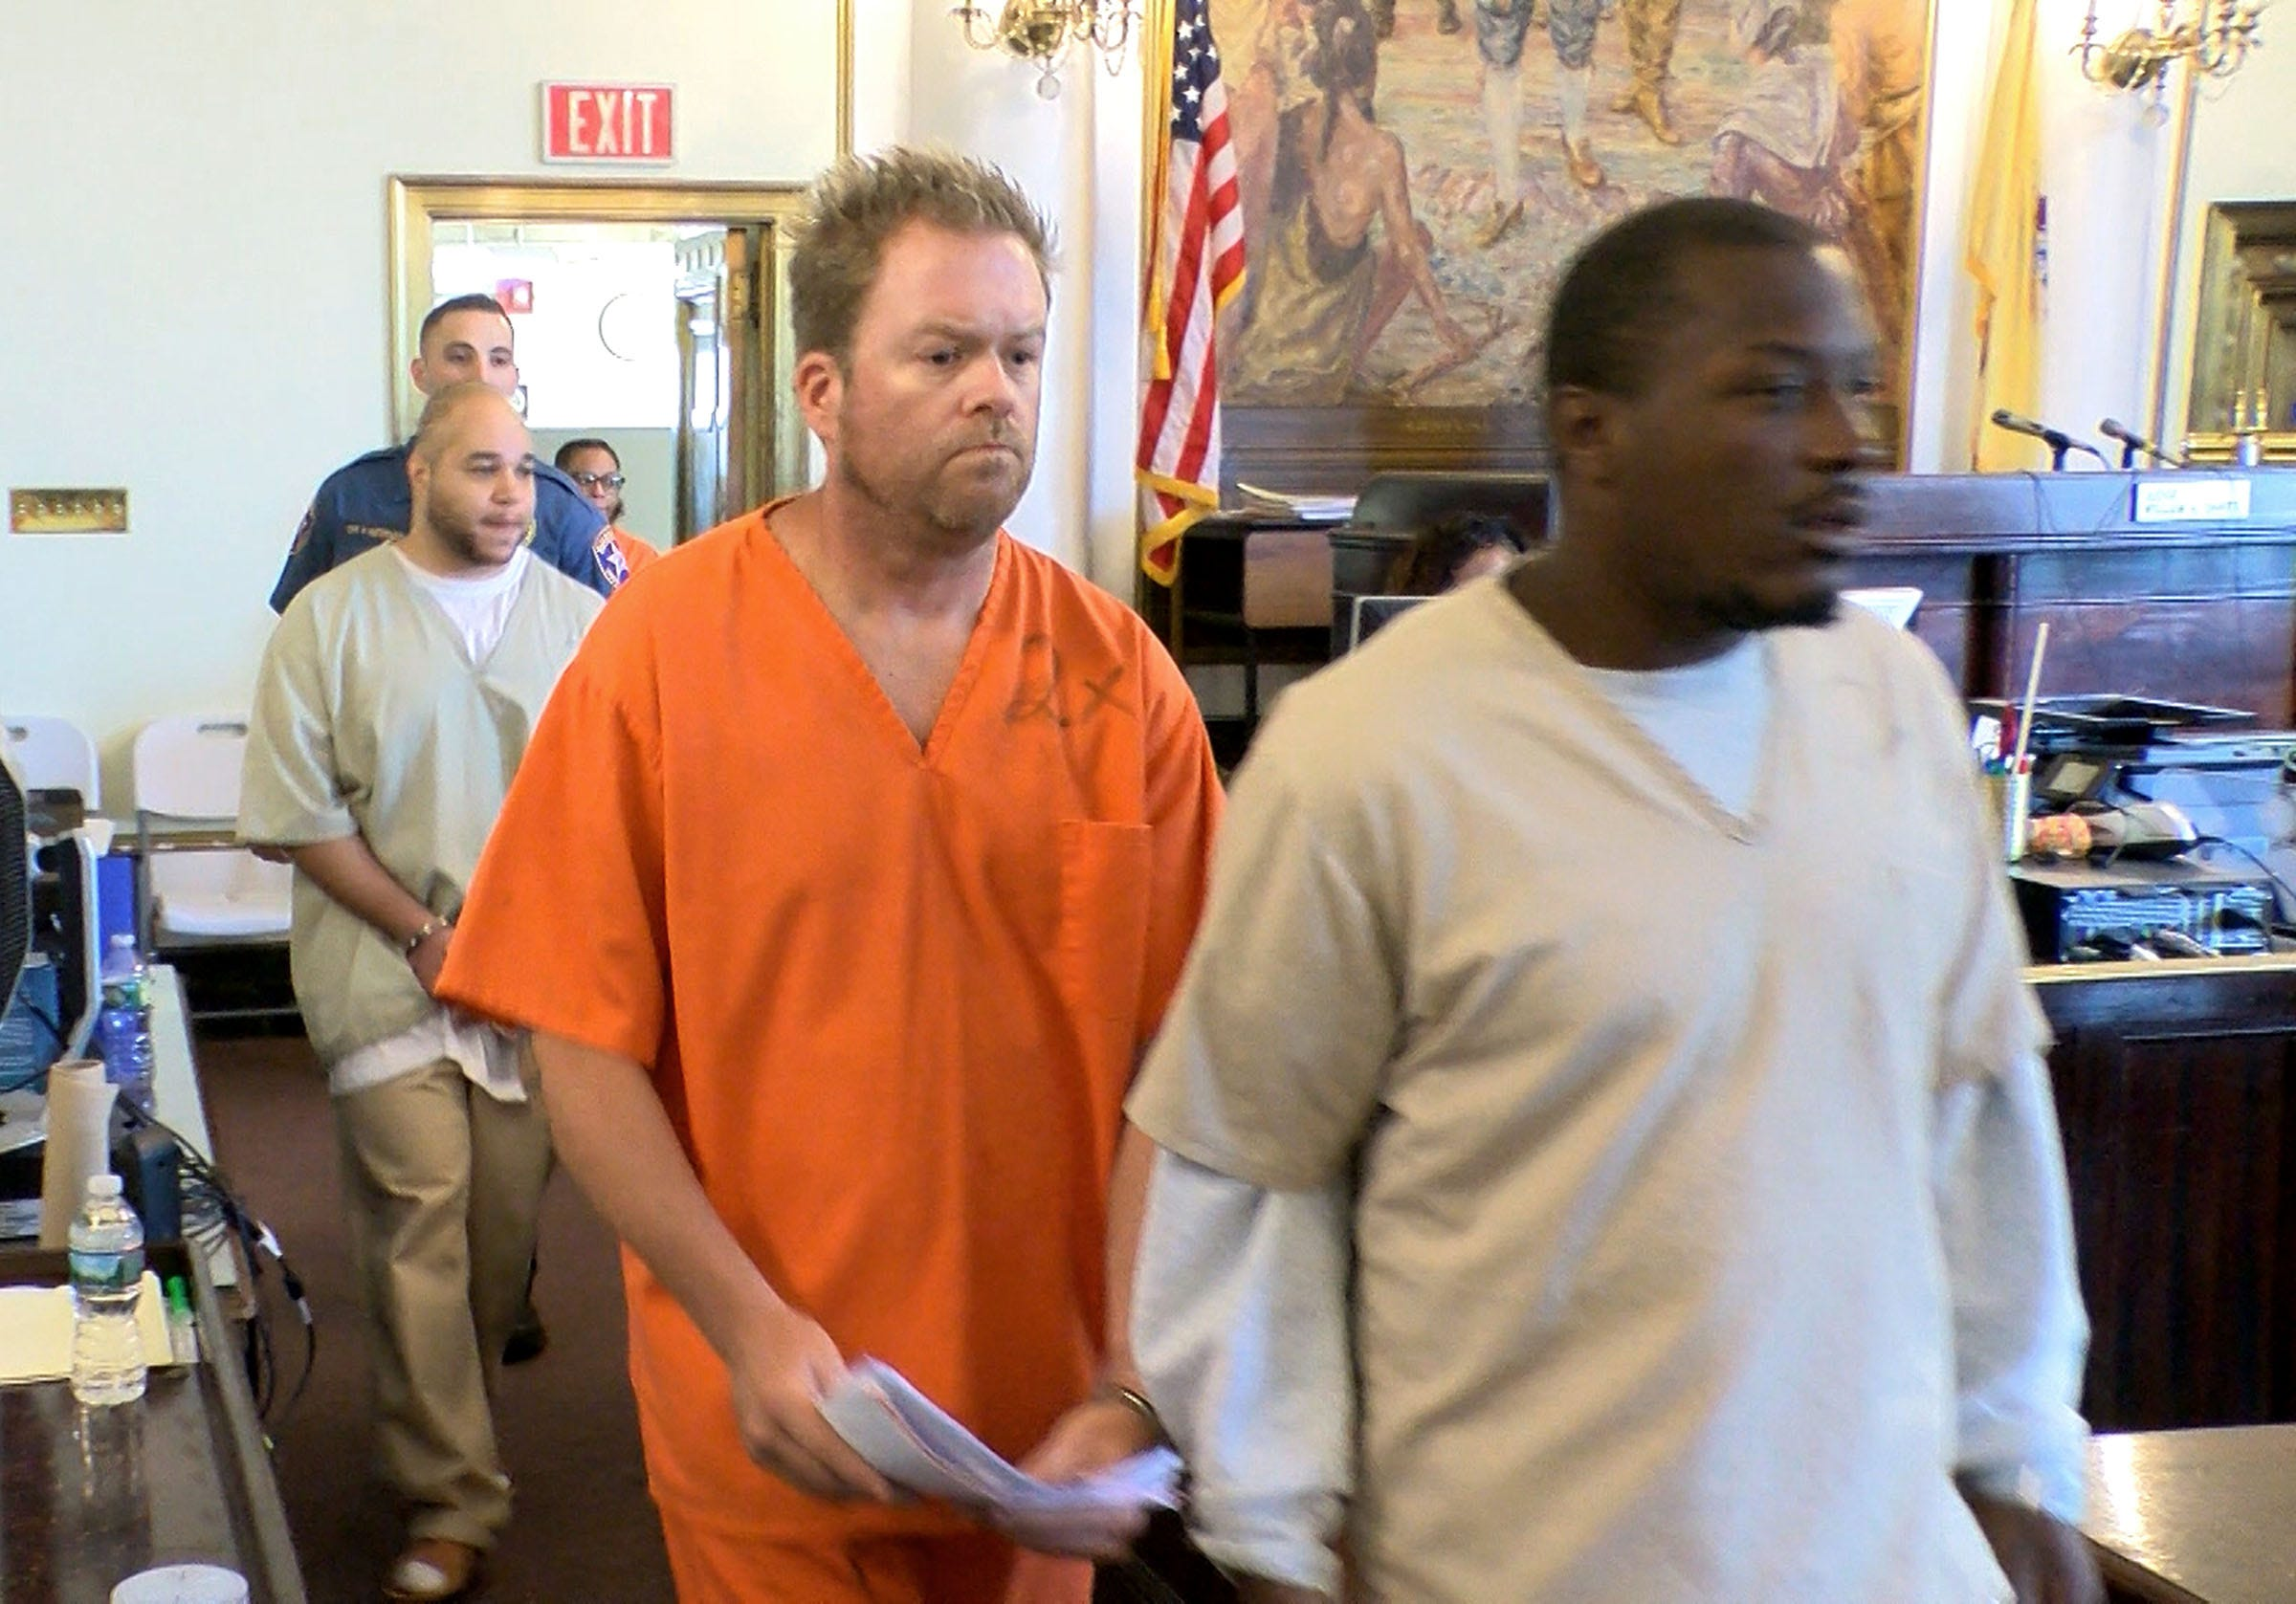 Delaware man charged with bringing loaded gun to Westfield school to remain  jailed